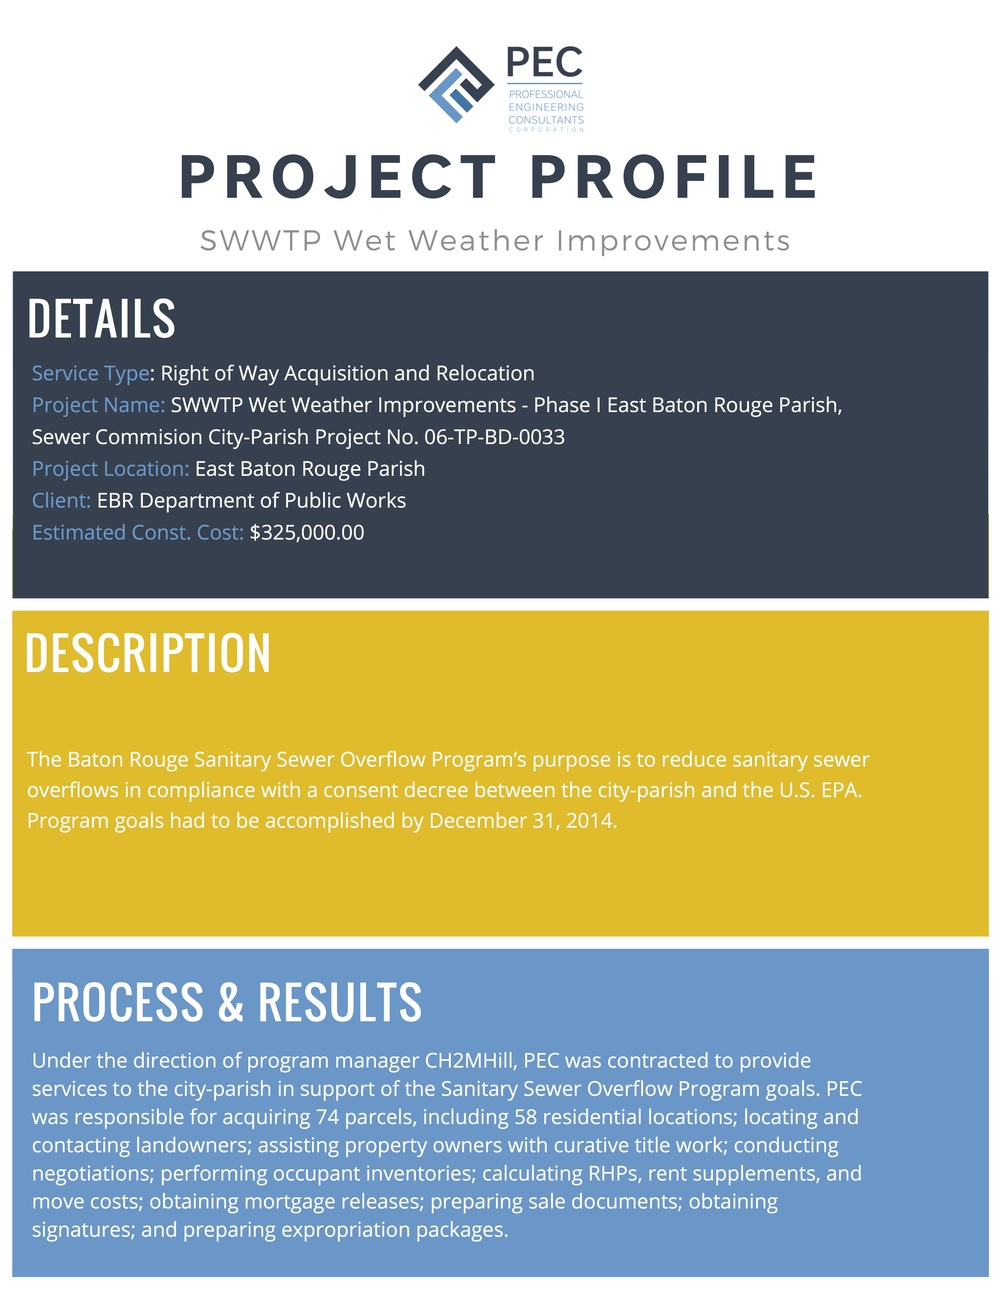 Project Profile_SWWTP Wet Weather Improvements.jpg